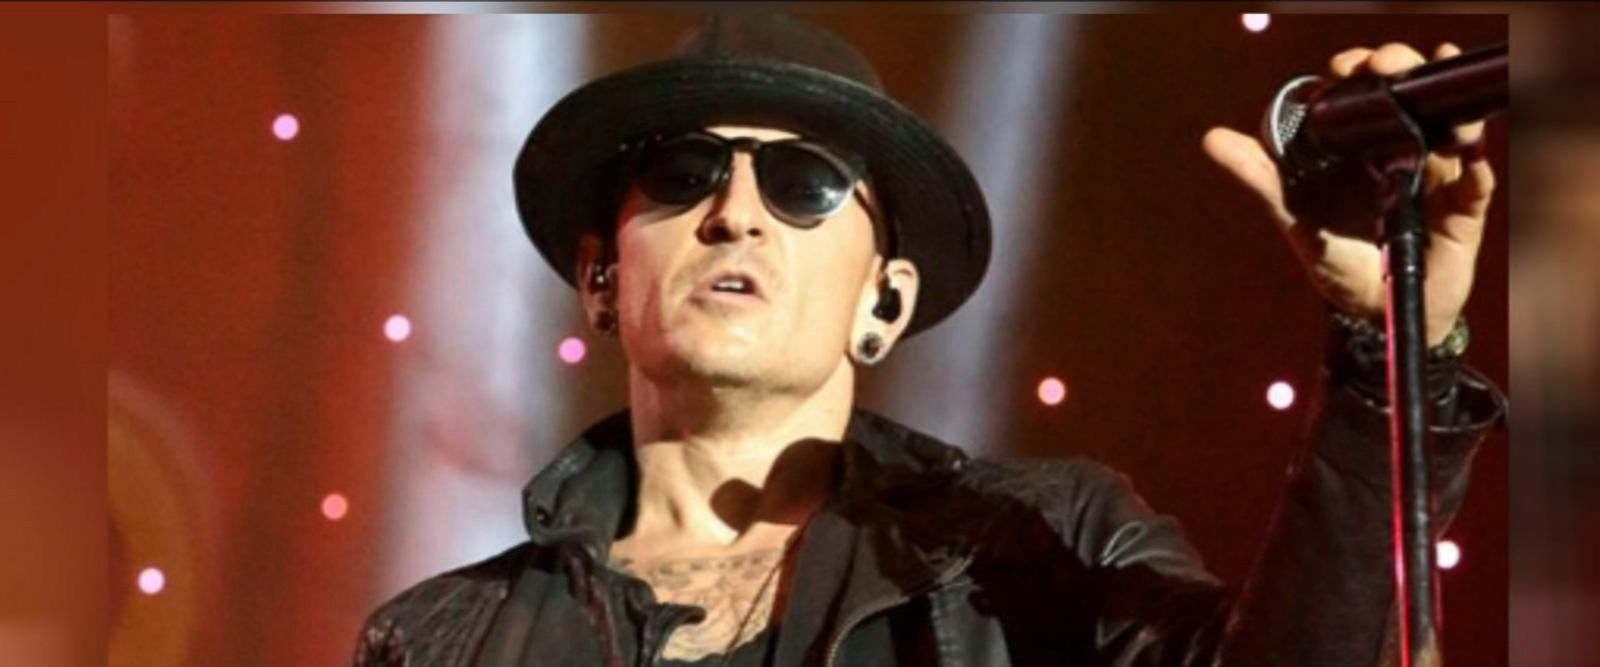 Chester Bennington's body was found this morning.